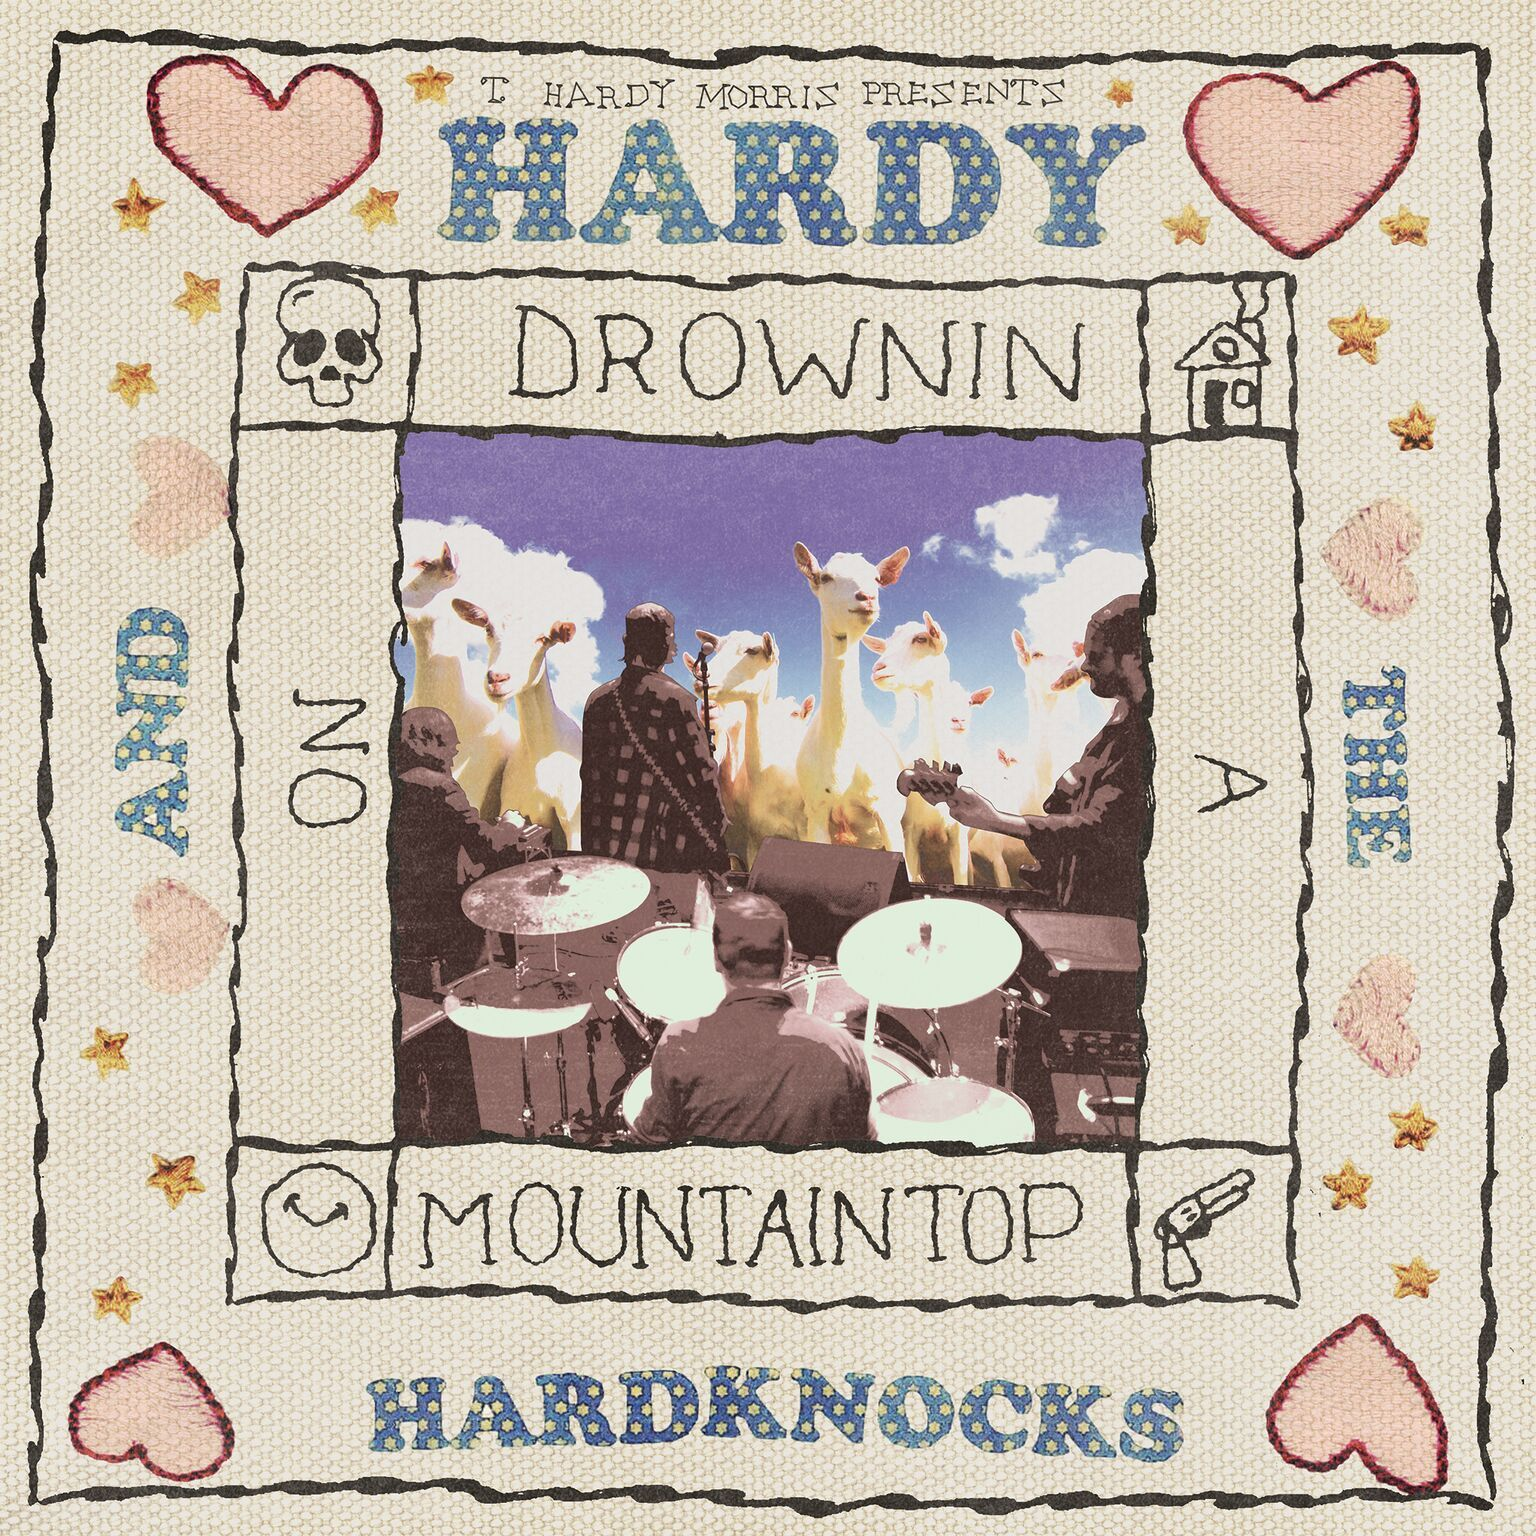 T. Hardy Morris - Hardy & The Hardknocks Drowning On A Mountaintop - Digital